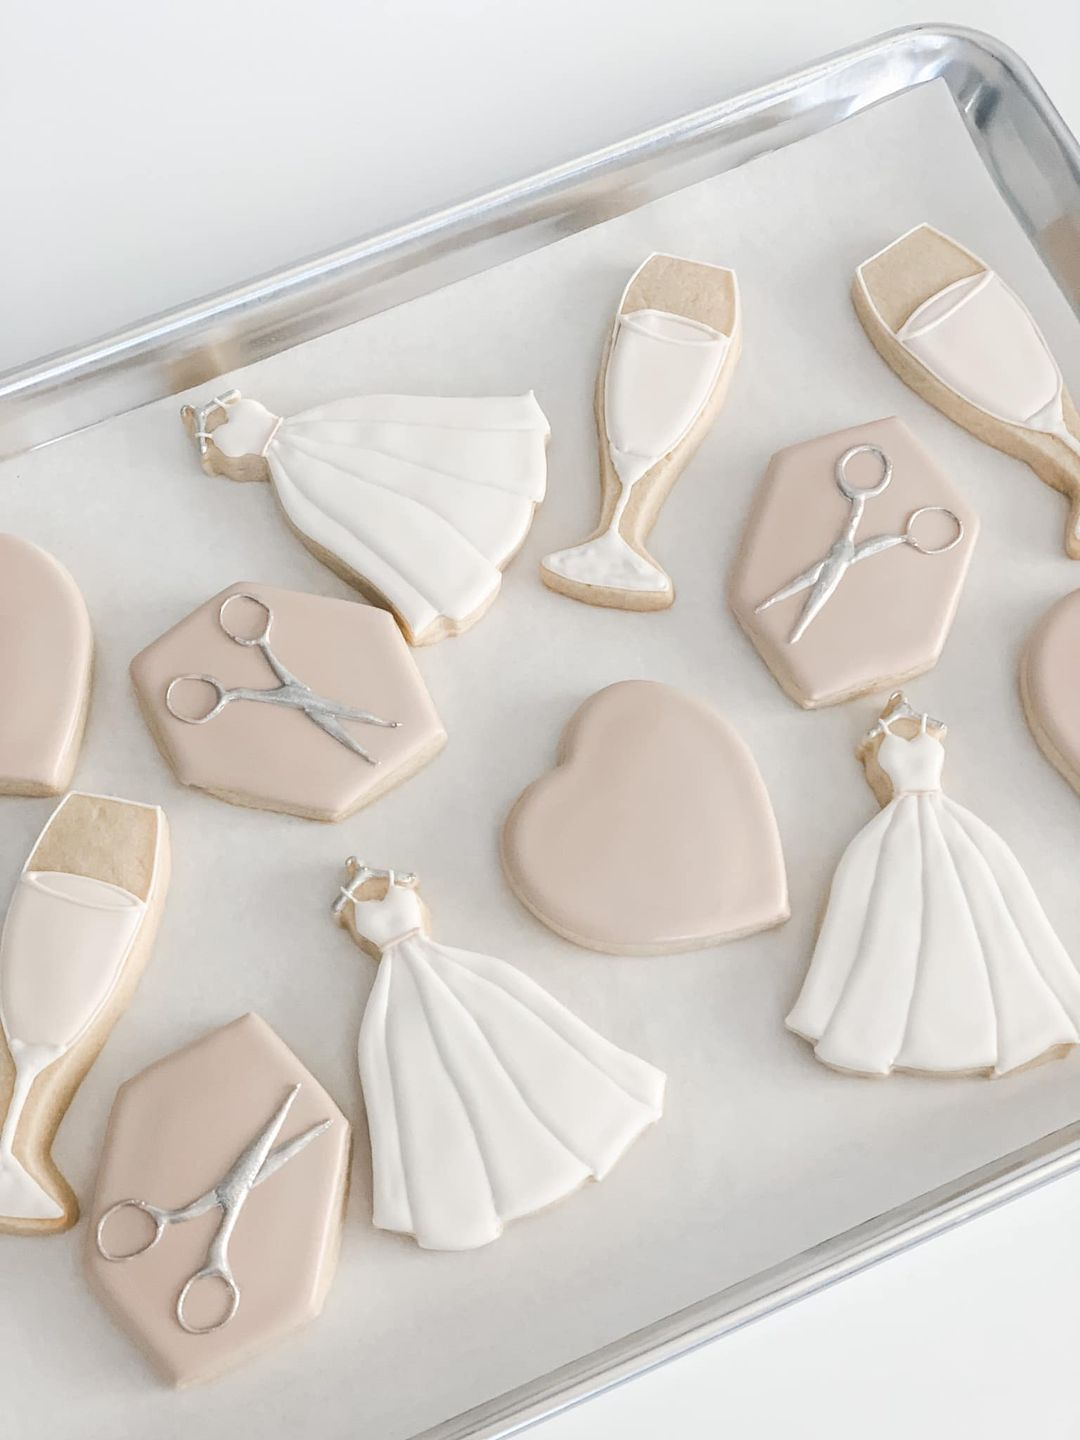 cookies with wedding dresses, scissors and champagne on them